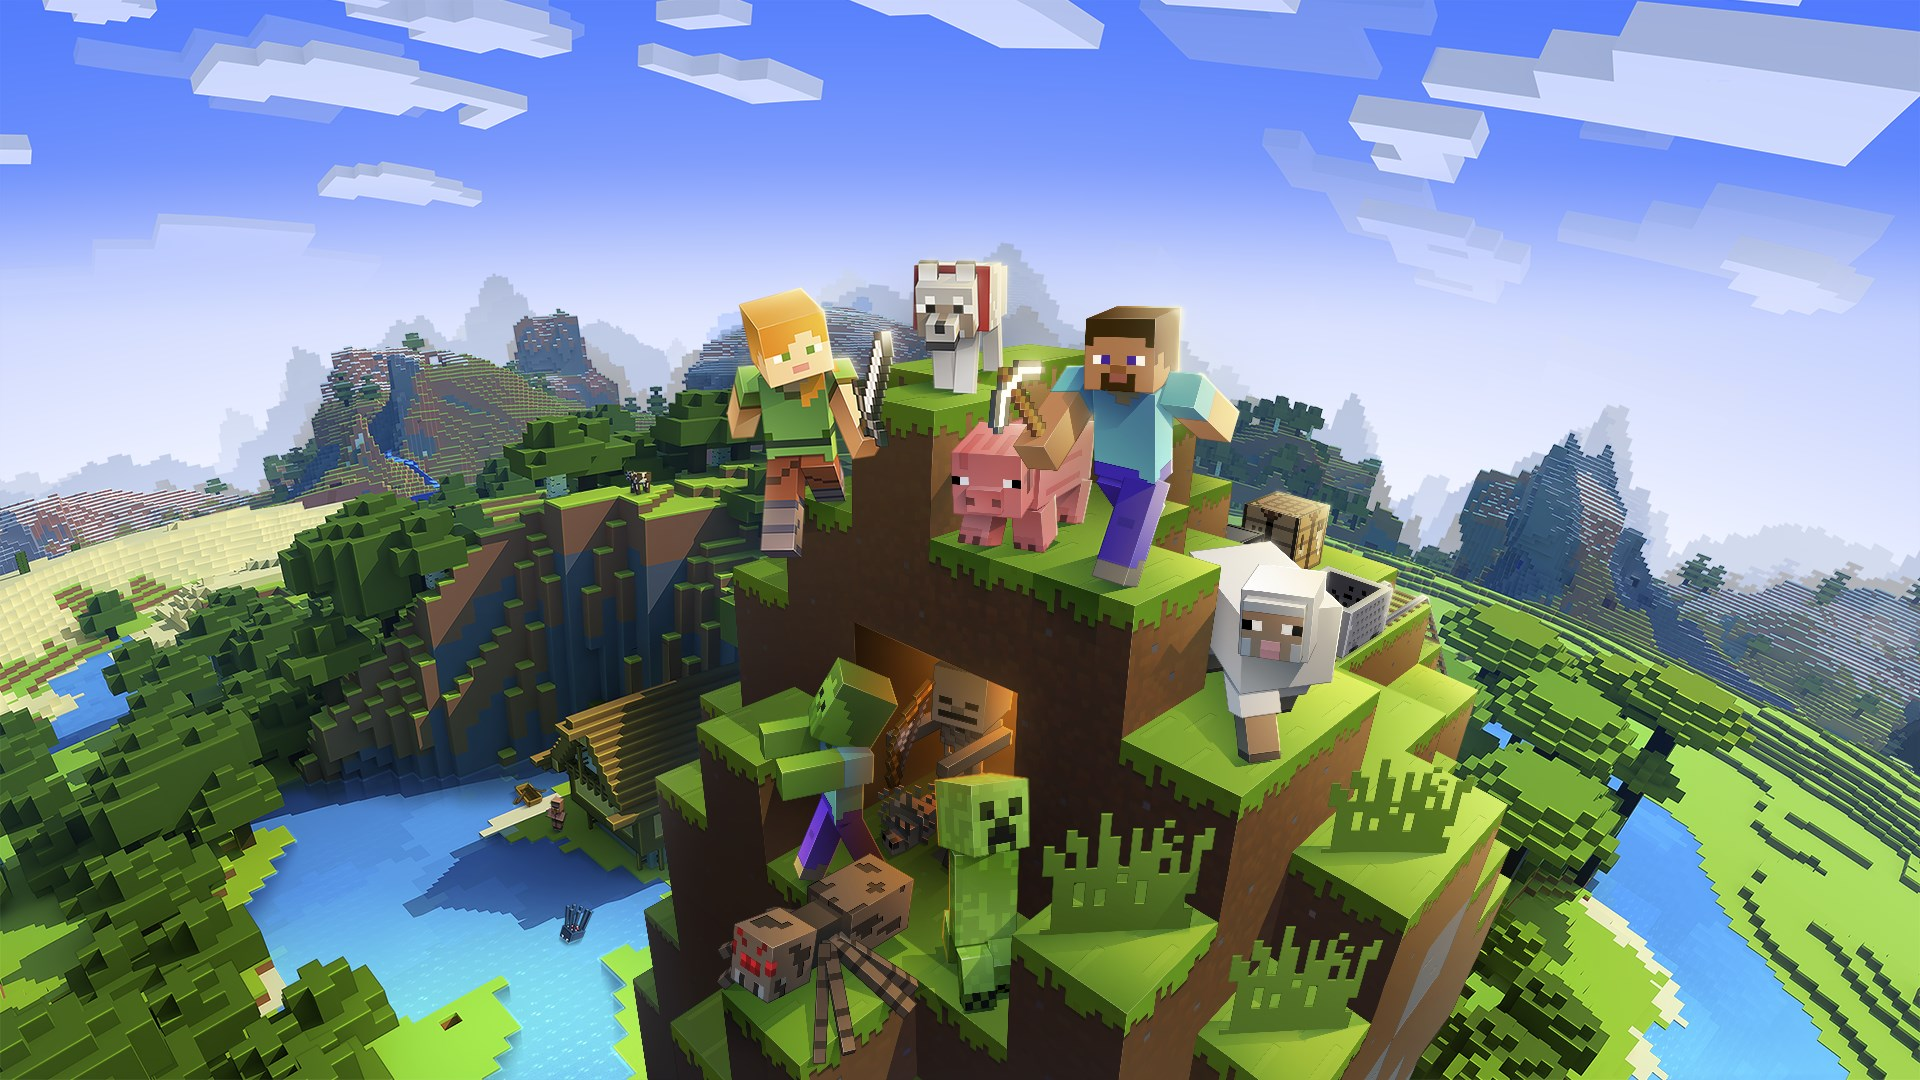 JD.com purchases rights to Minecraft: Education Edition in China